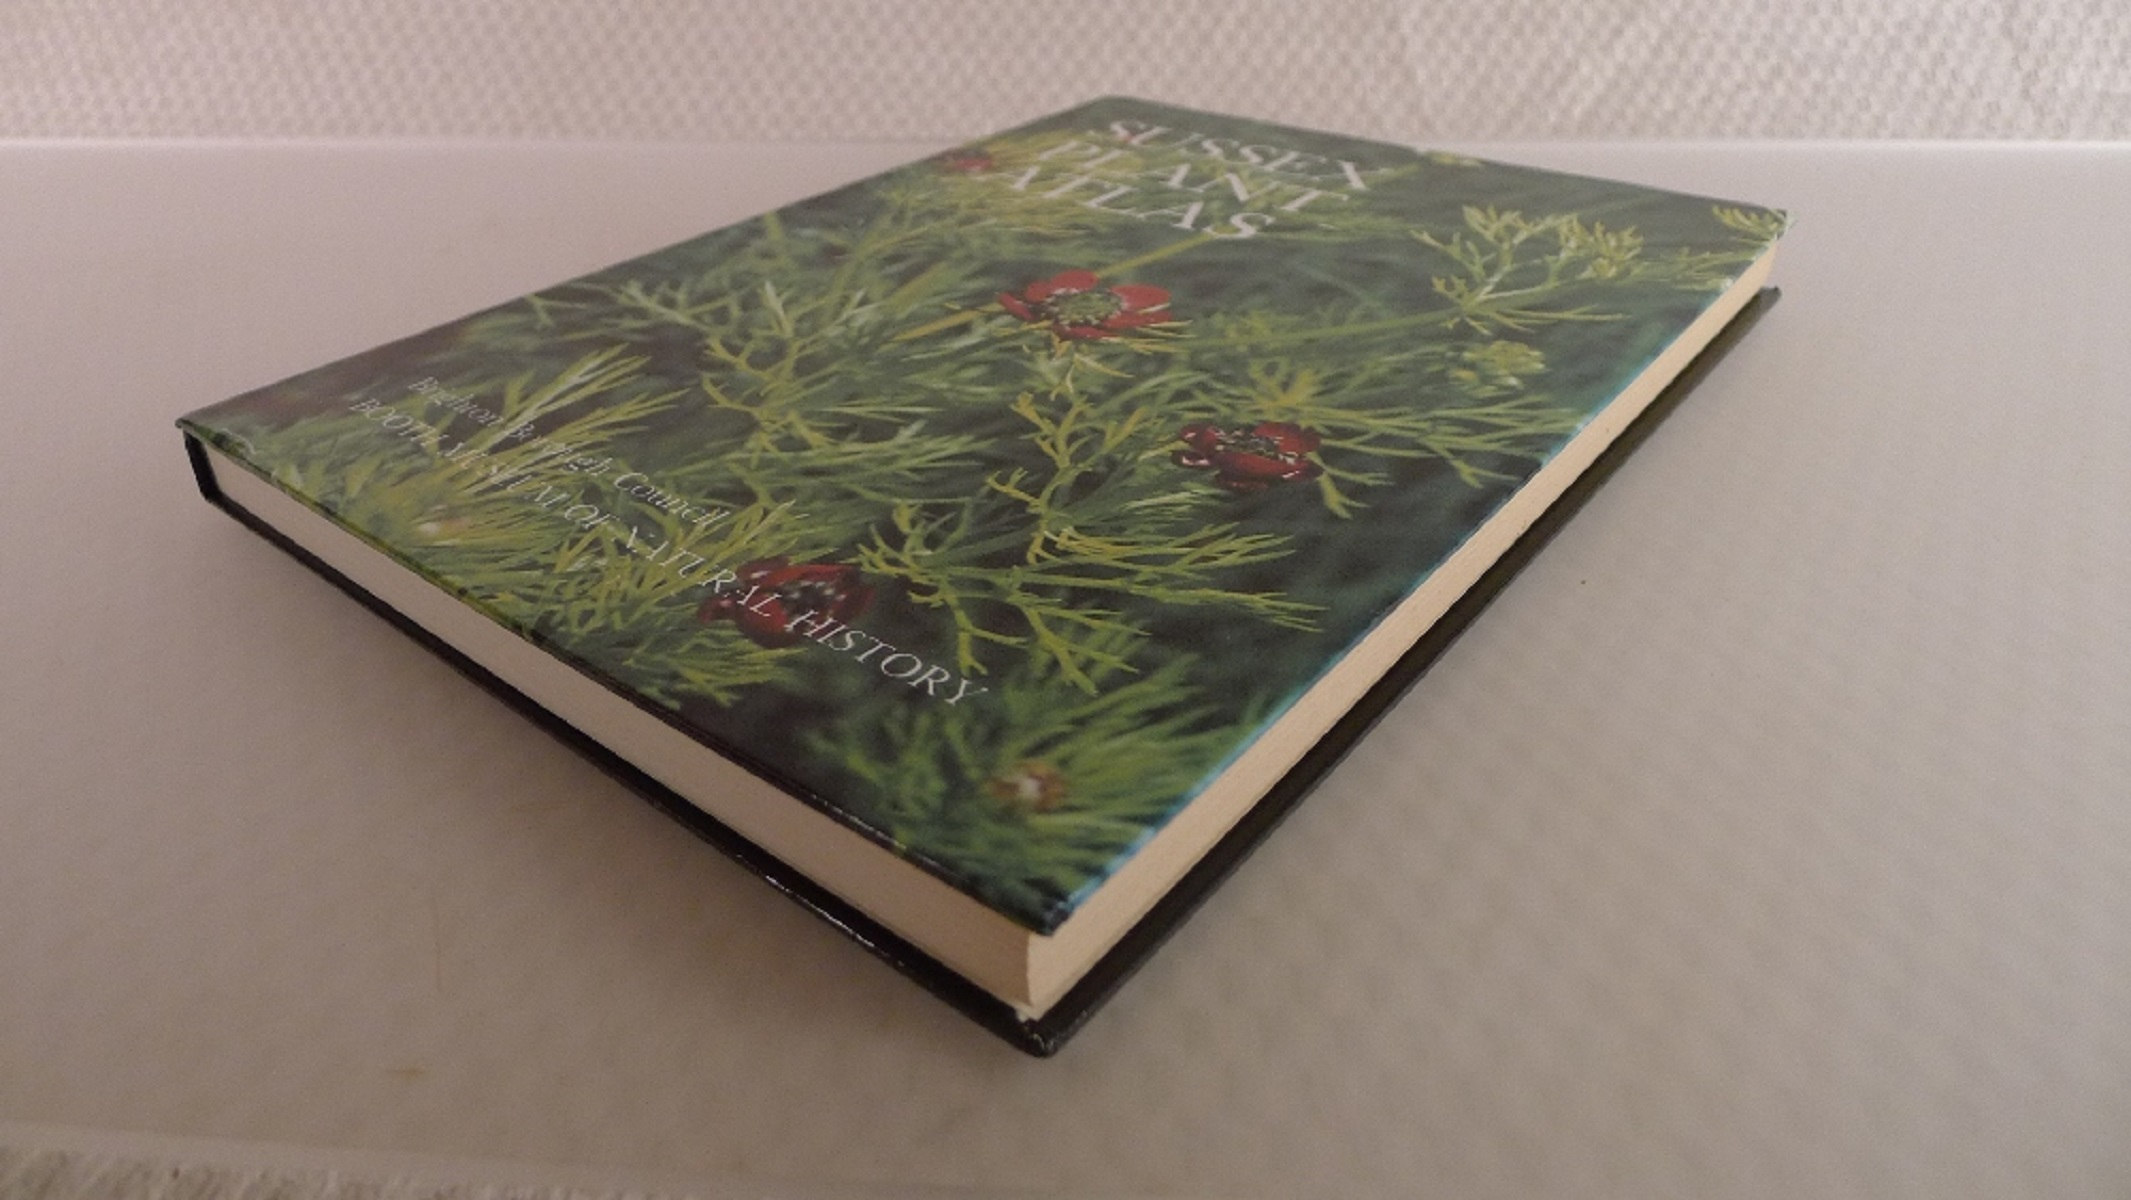 Sussex Plant Atlas by P C Hall published by Brighton Borough Council and Booth Museum of Natural - Image 3 of 4